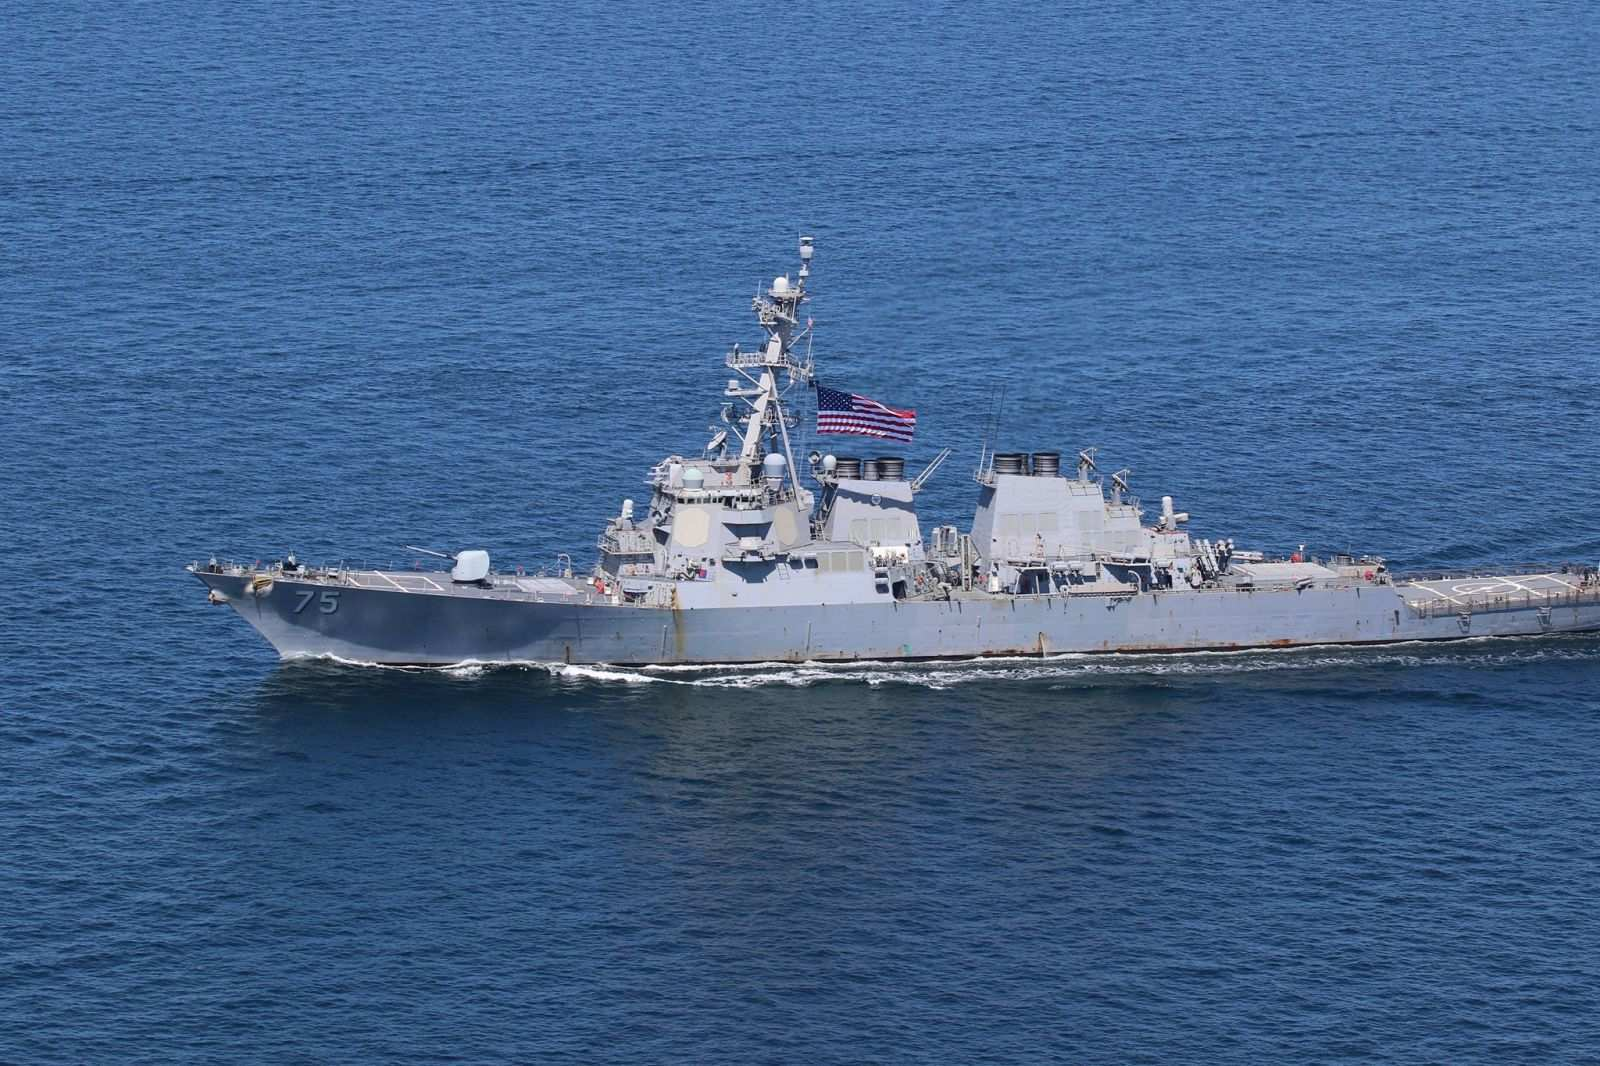 USS Donald Cook (DDG 75) Is in the Black Sea